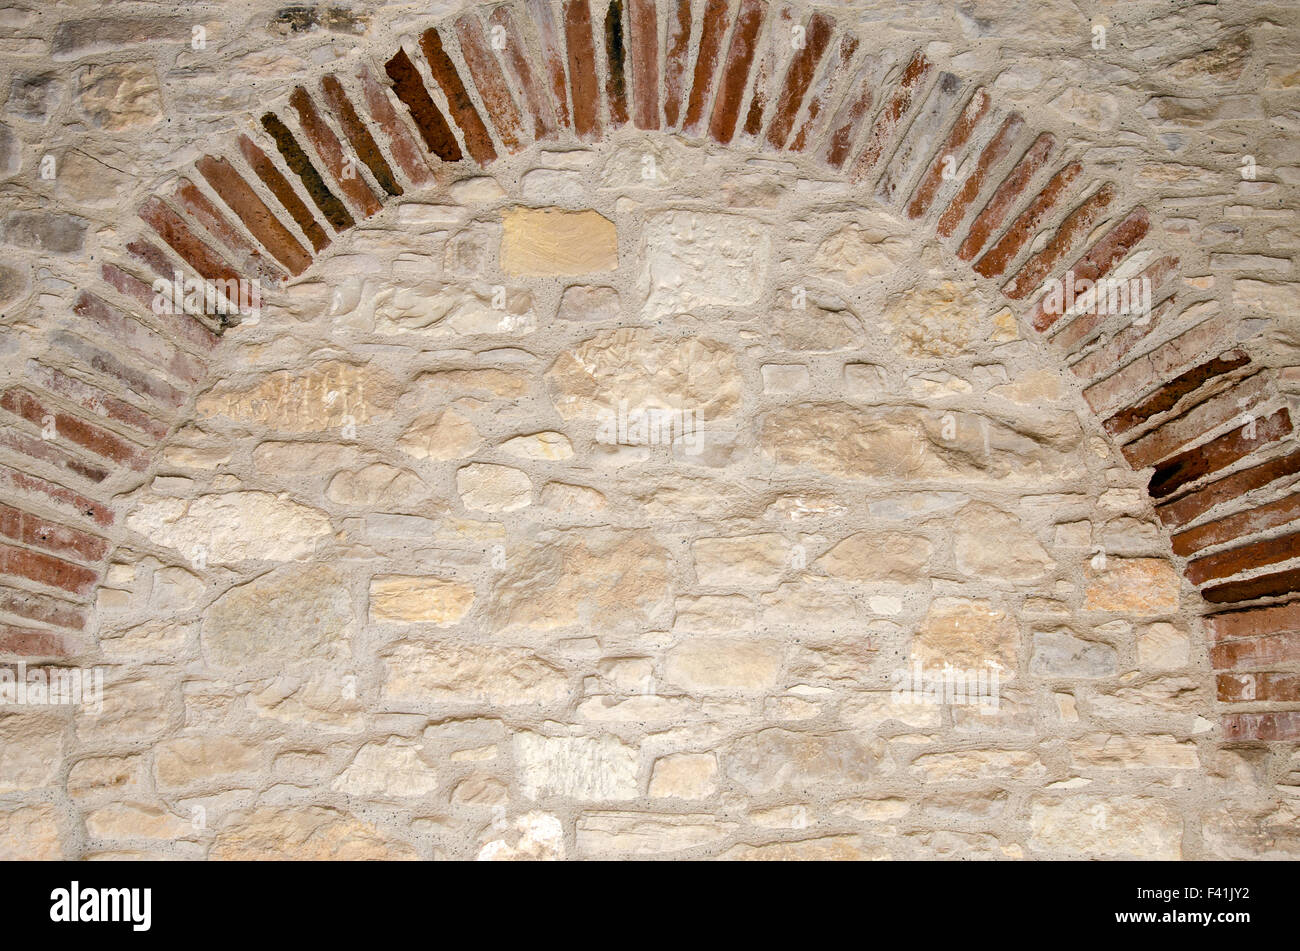 Old brick wall with arch imitation - Stock Image